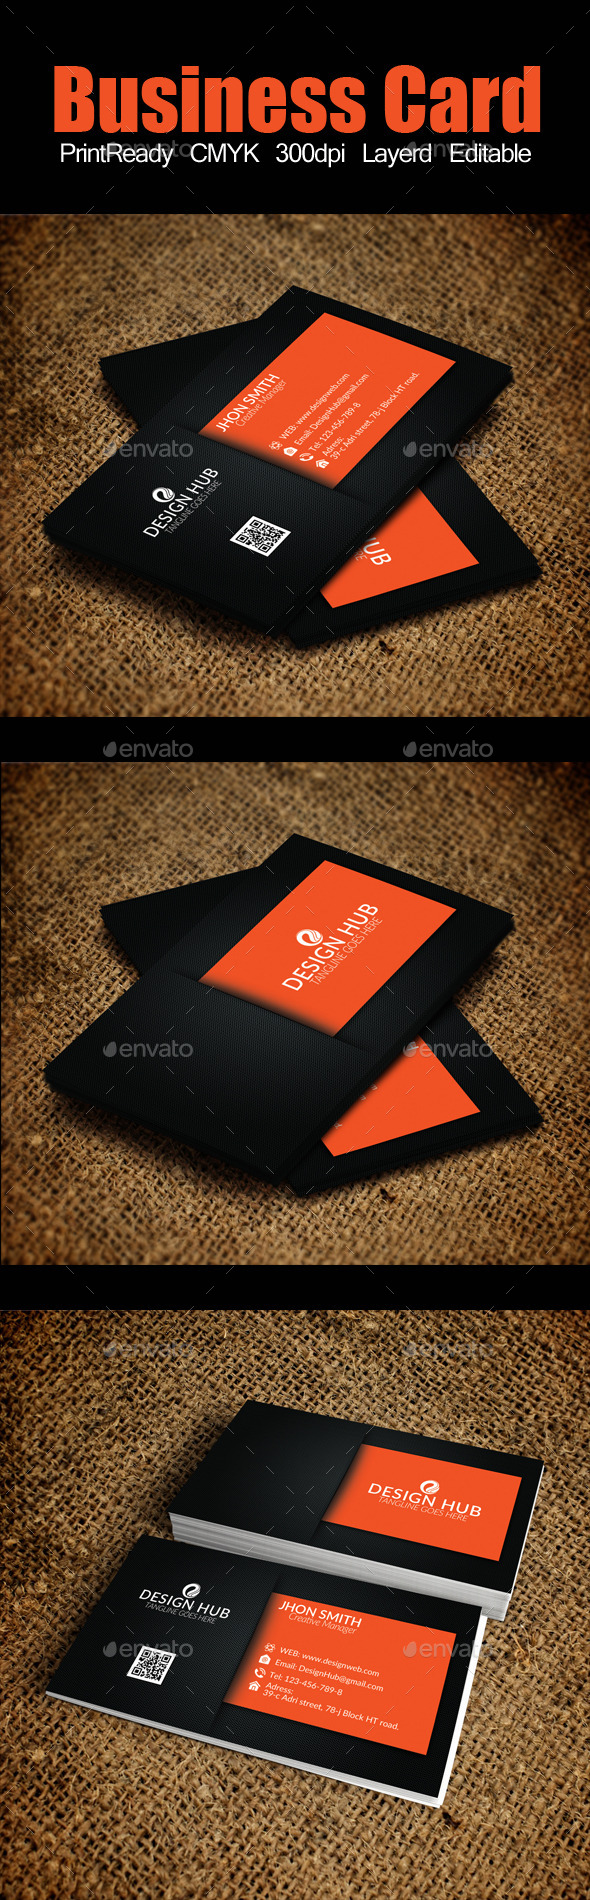 GraphicRiver Business Card 9369864